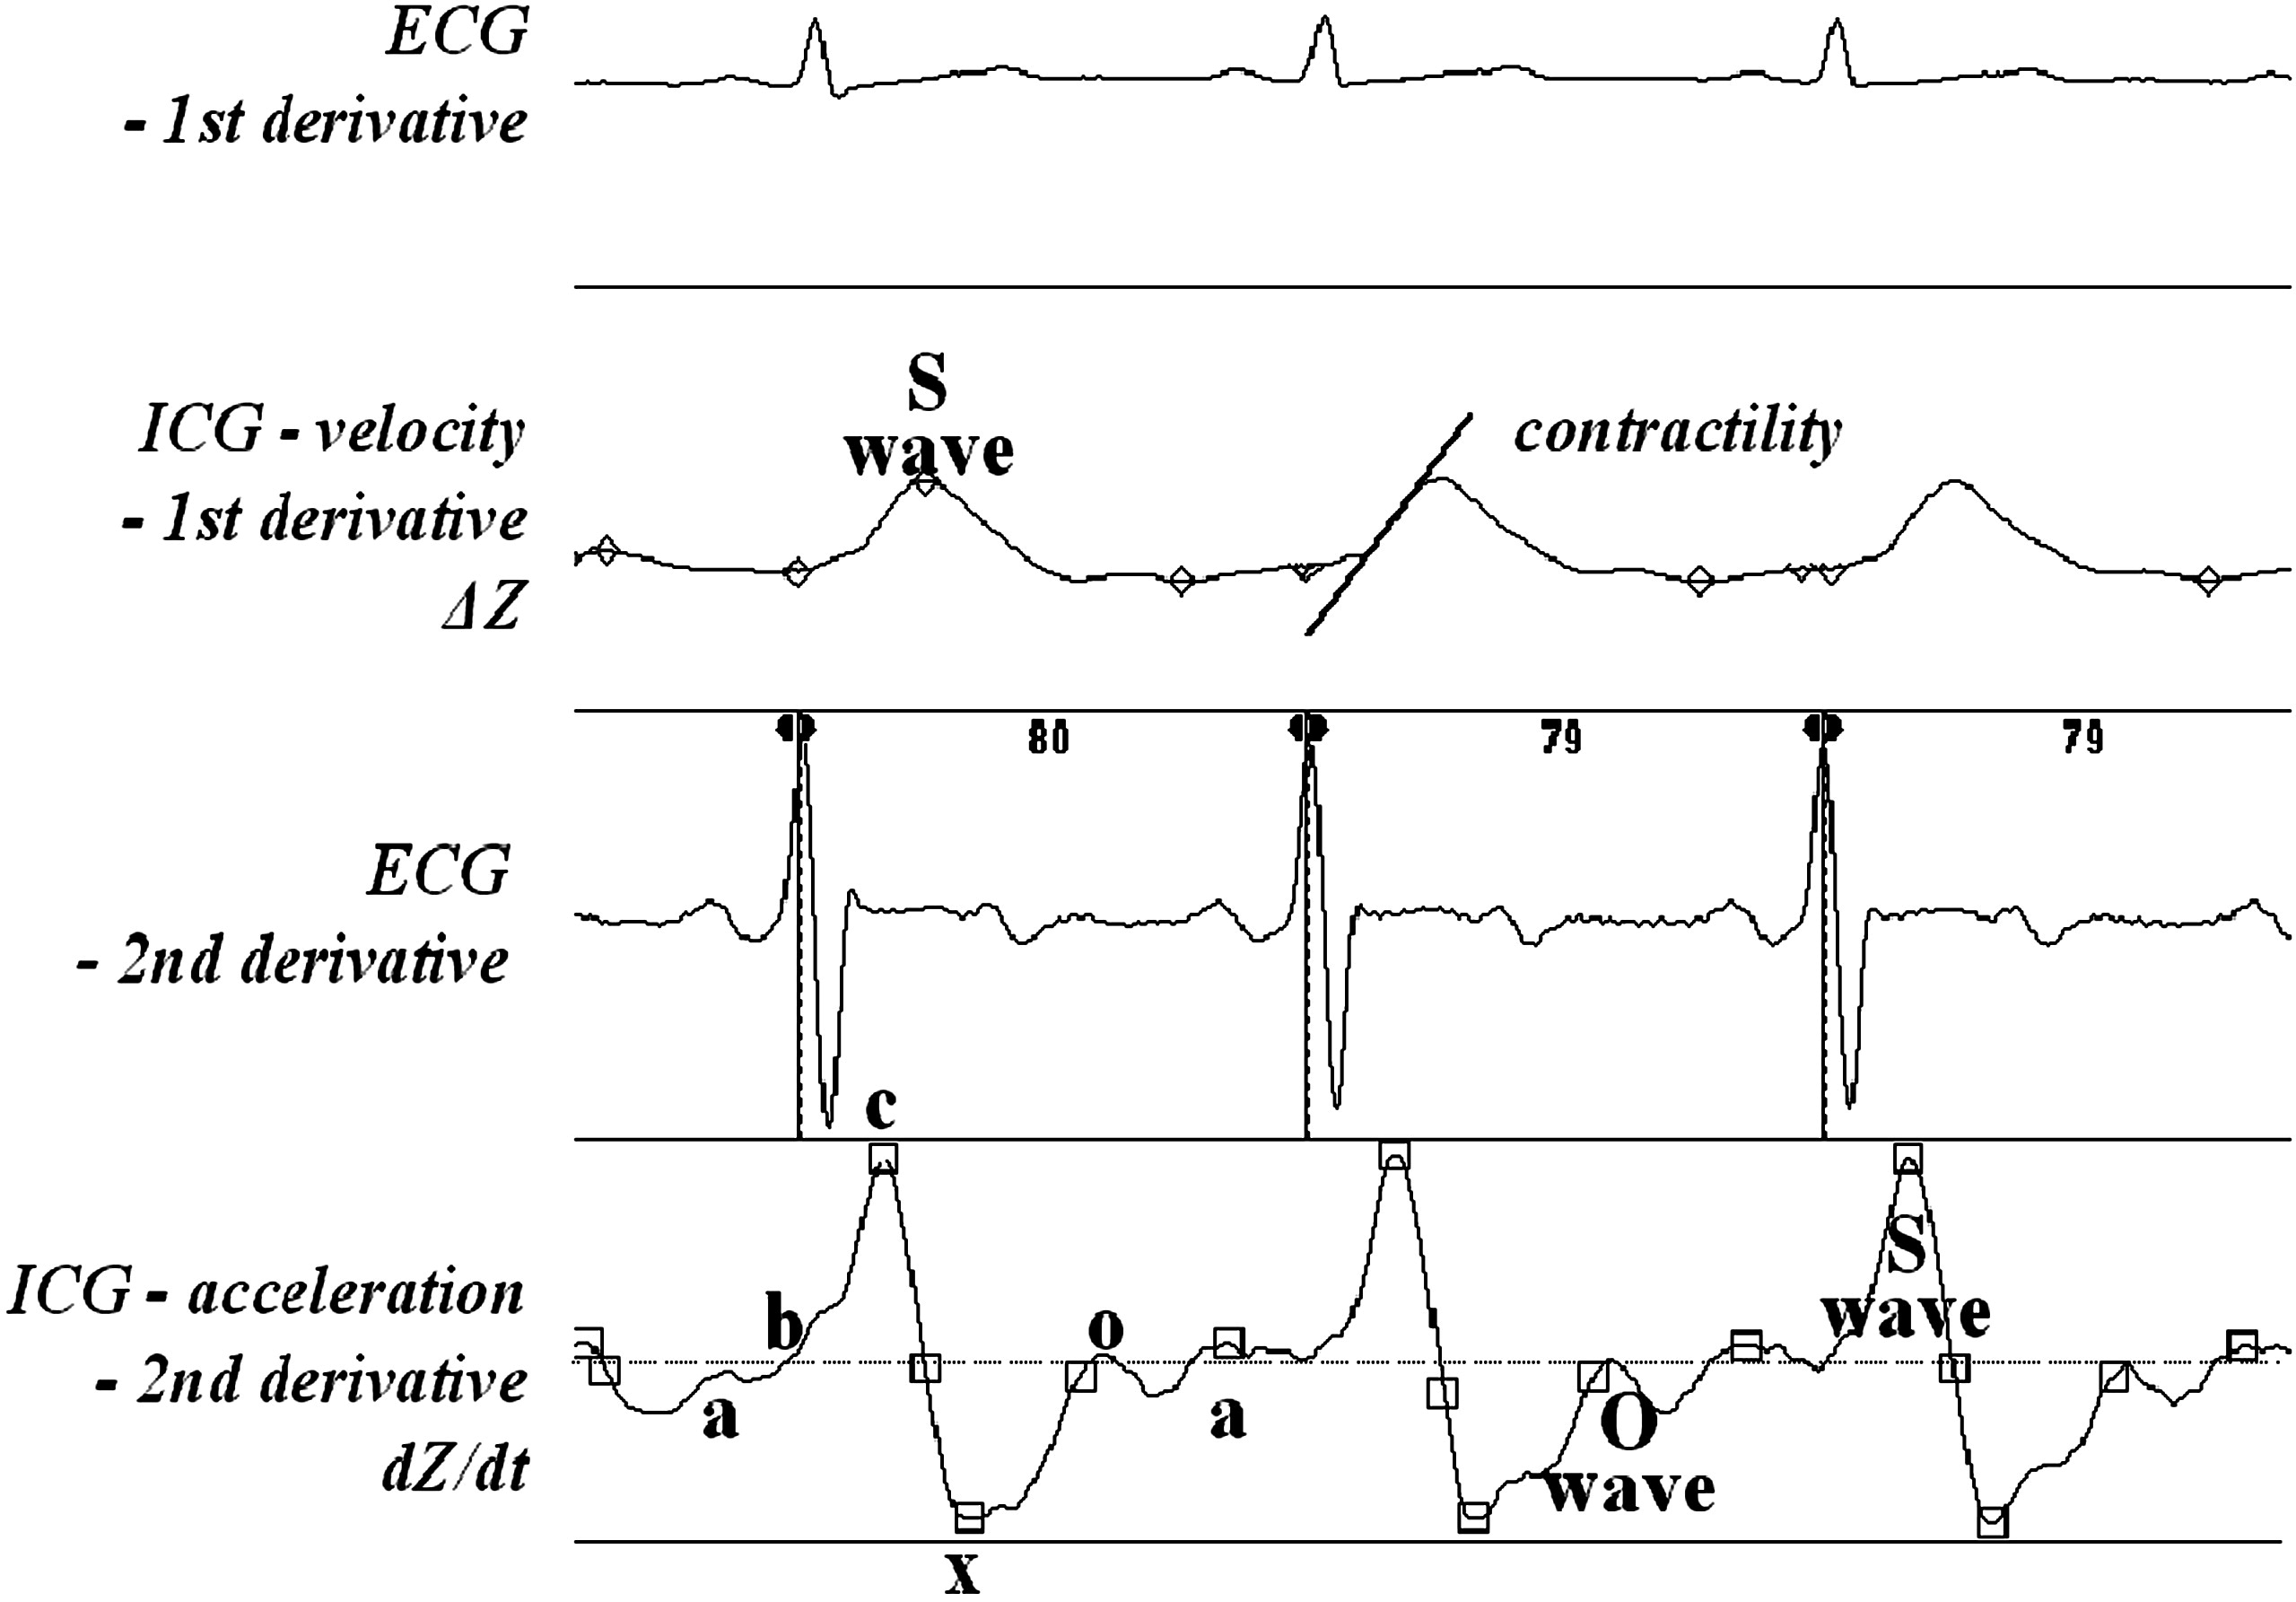 Impedance cardiography